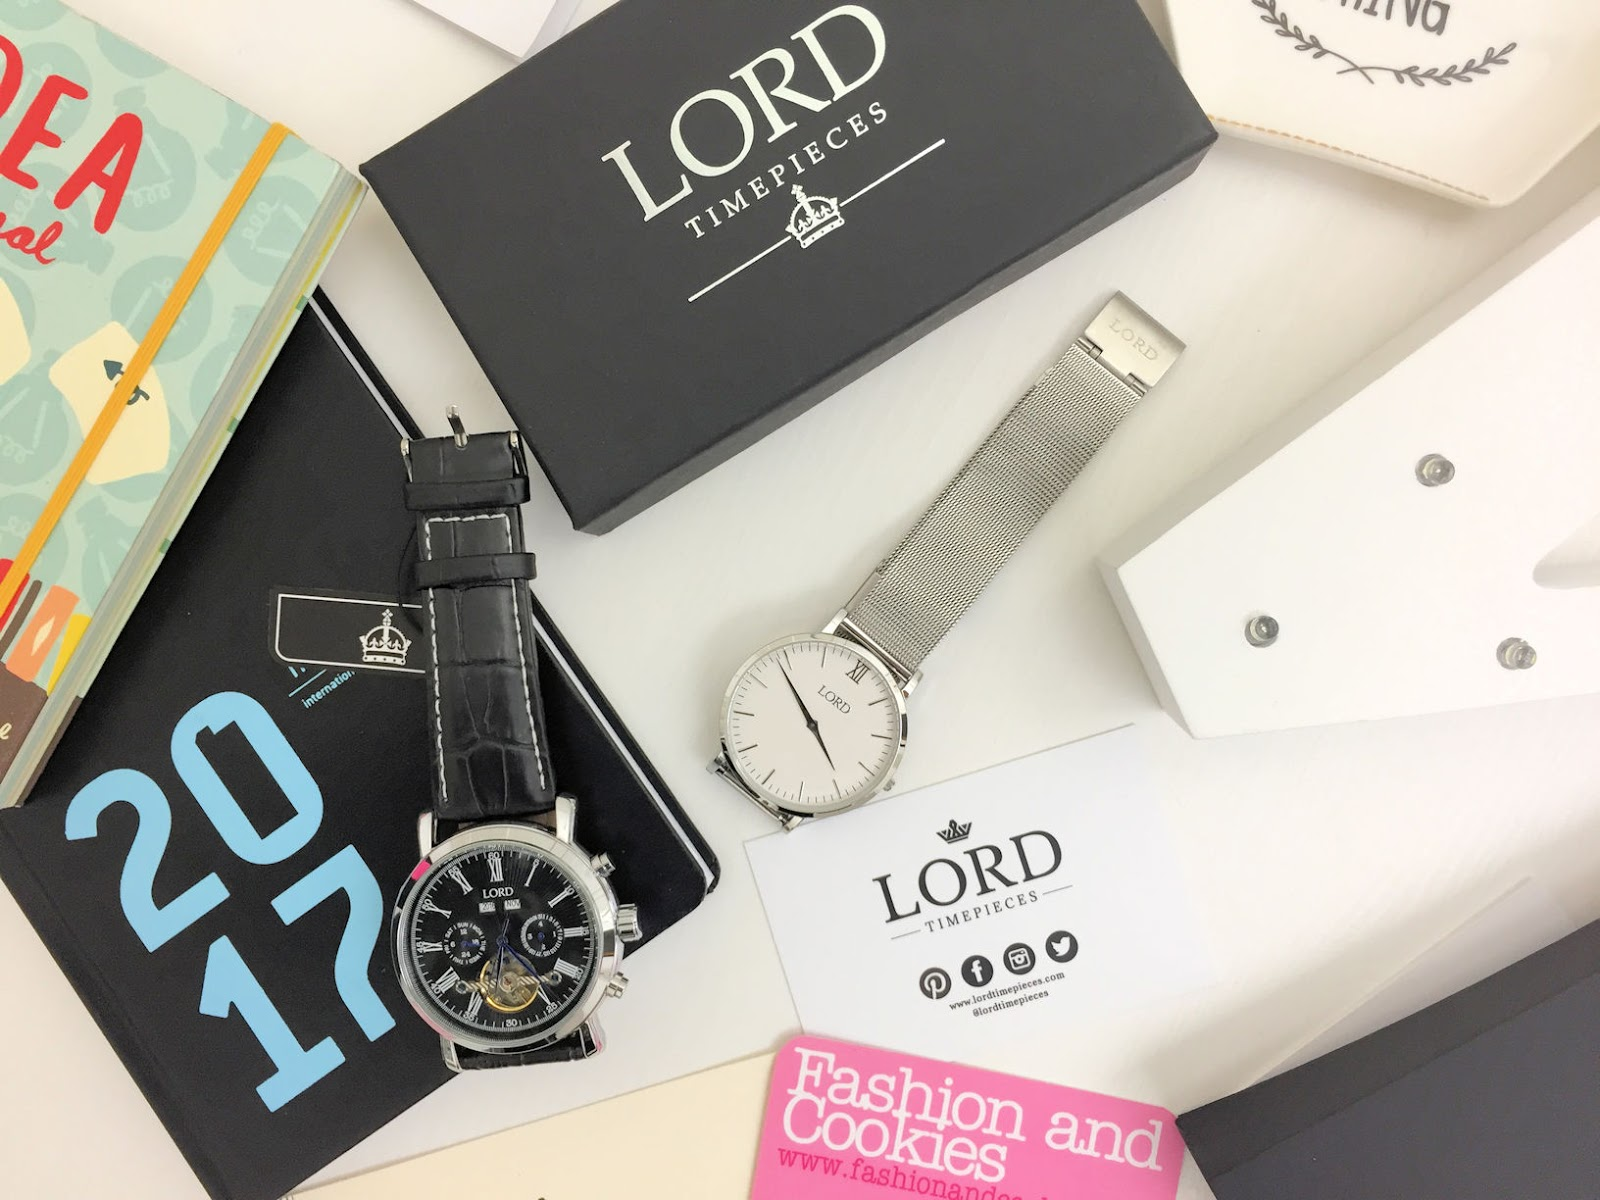 Lord Timepieces shopping experience, Lord watch review on Fashion and Cookies fashion blog, fashion blogger style